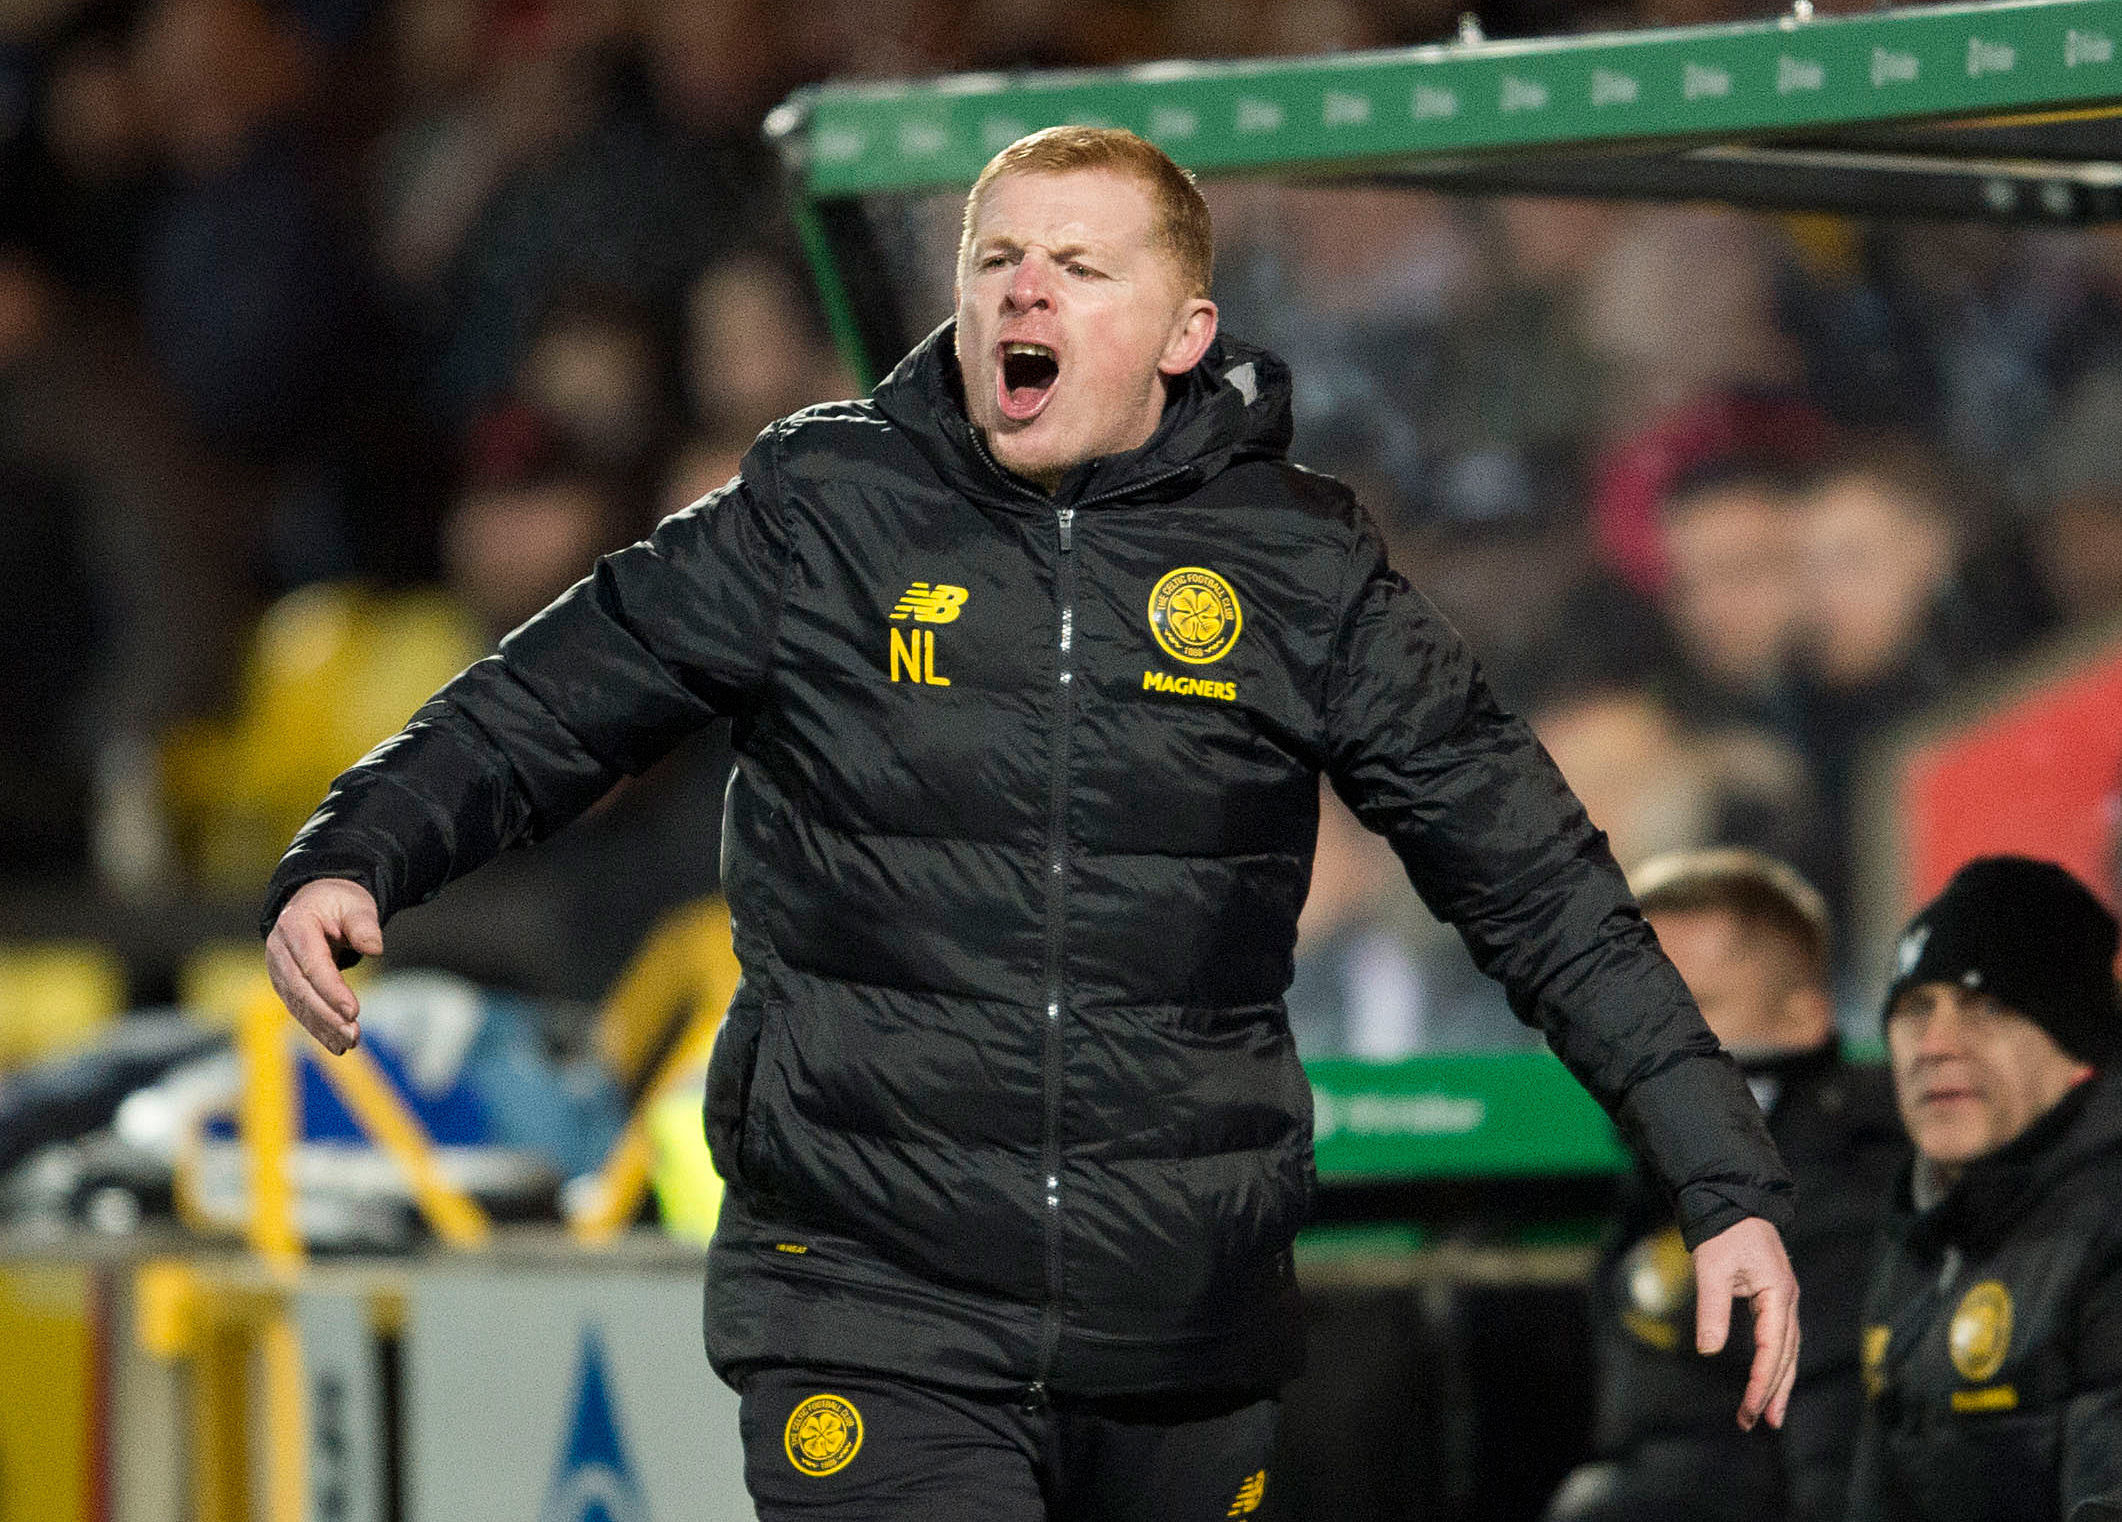 Neil Lennon plays down Scottish title talk despite Celtic increasing lead over Rangers to 13 points